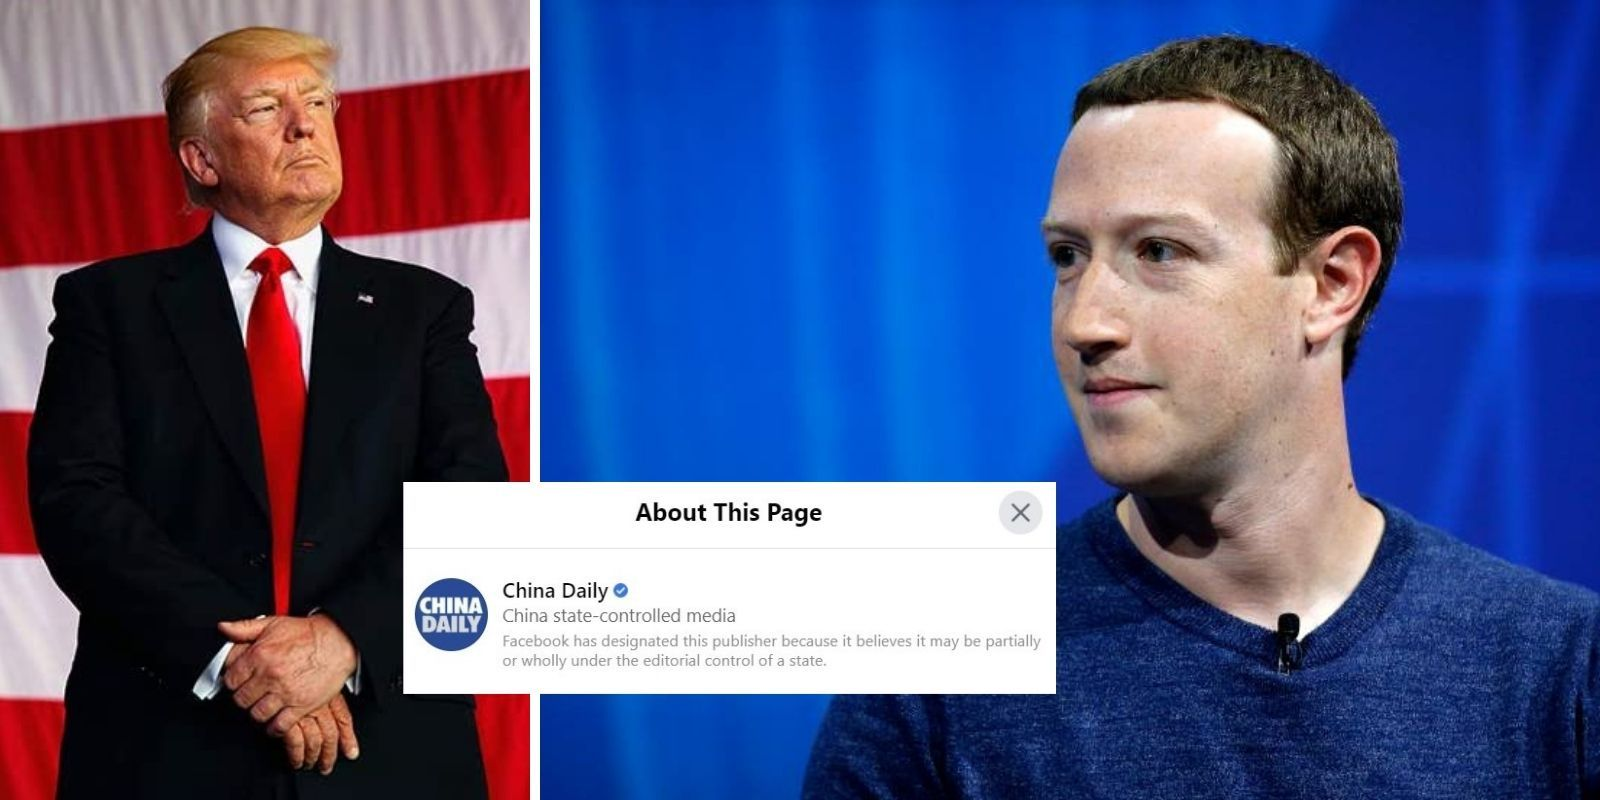 American president banned by Facebook while CCP allowed to spew lies on social media